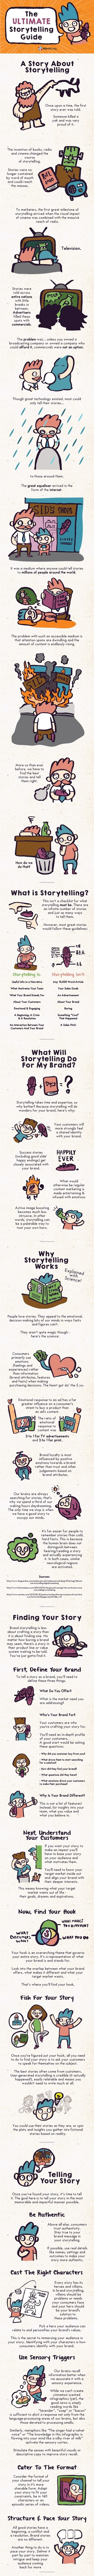 The Ultimate Storytelling Guide Infographic | e-Learning Infographics | How to find and tell your story | Scoop.it